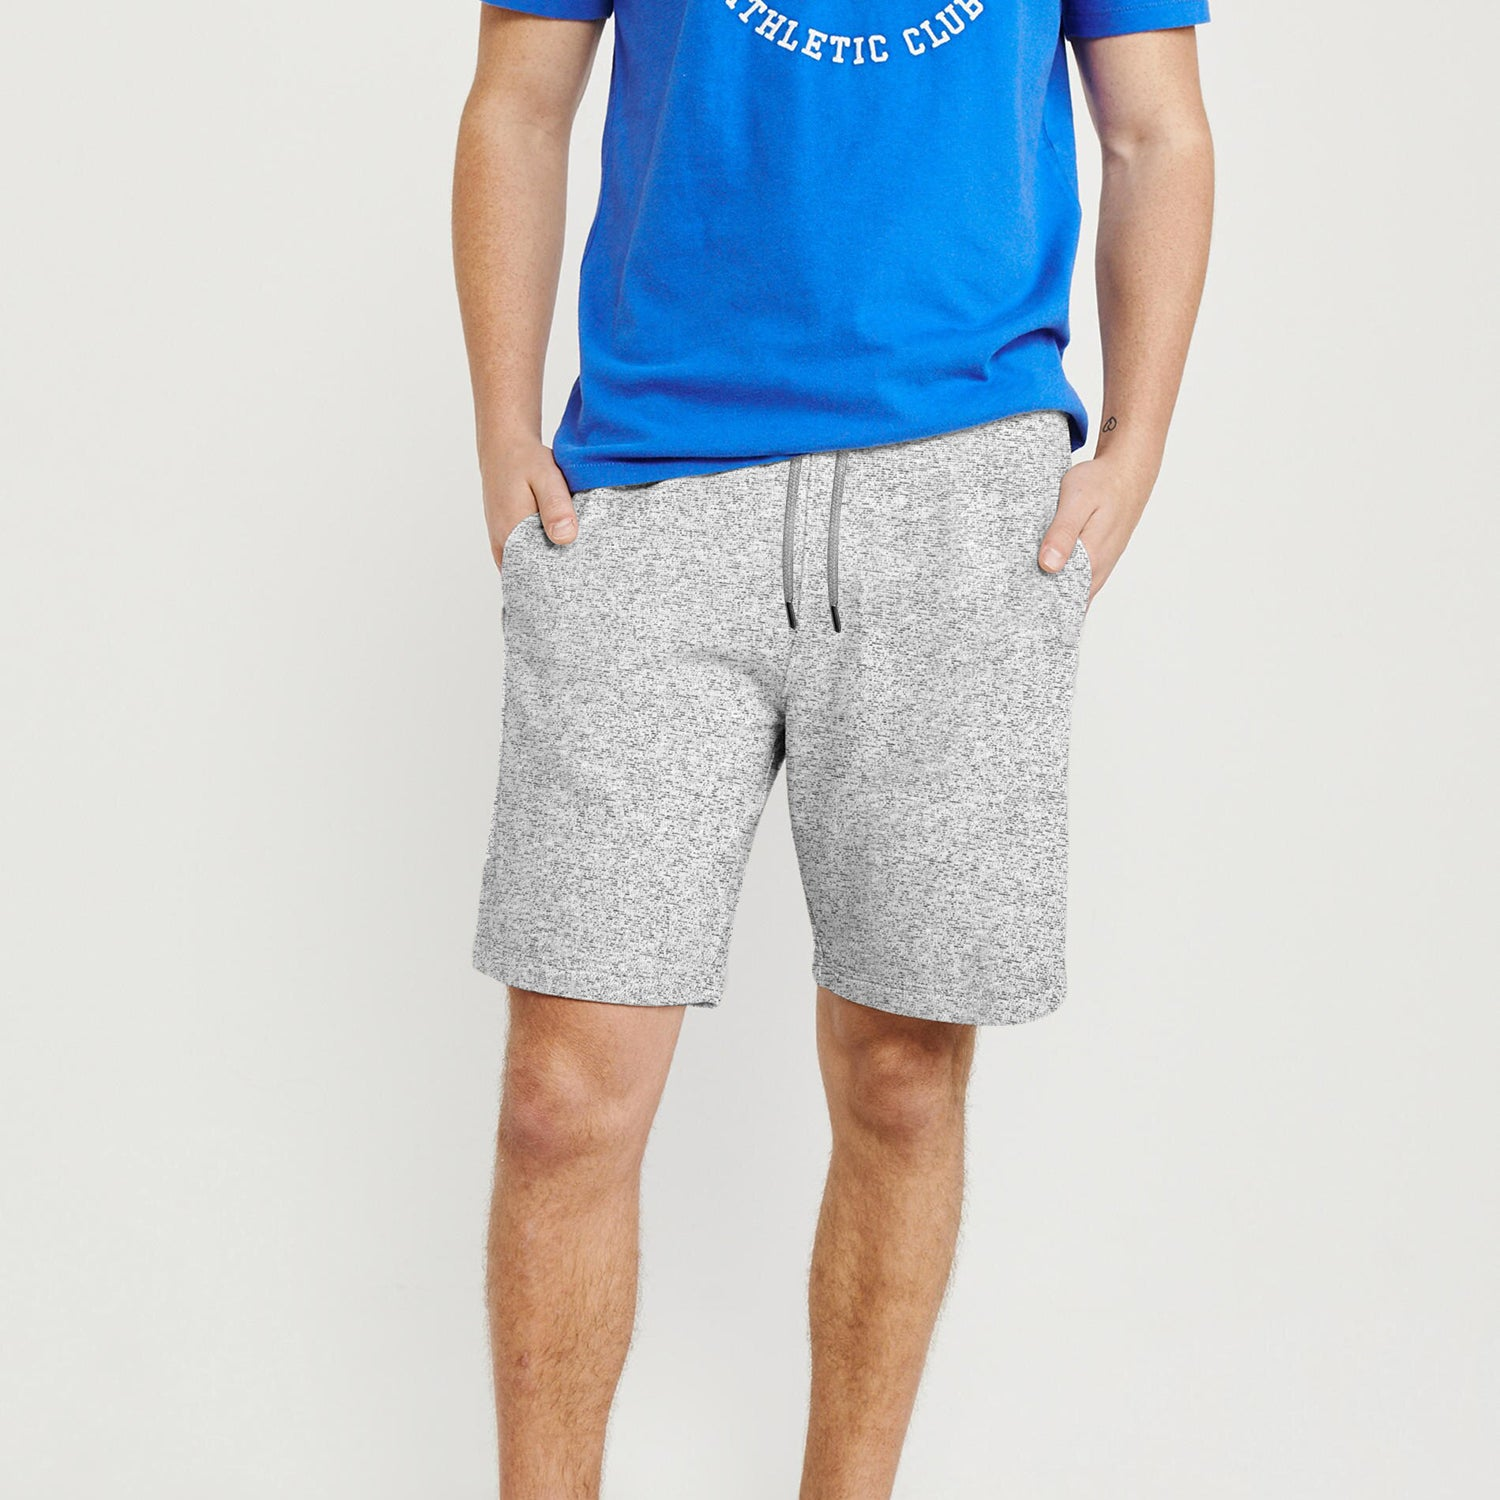 Next Fleece Short For Men-Grey Melange-BE9128